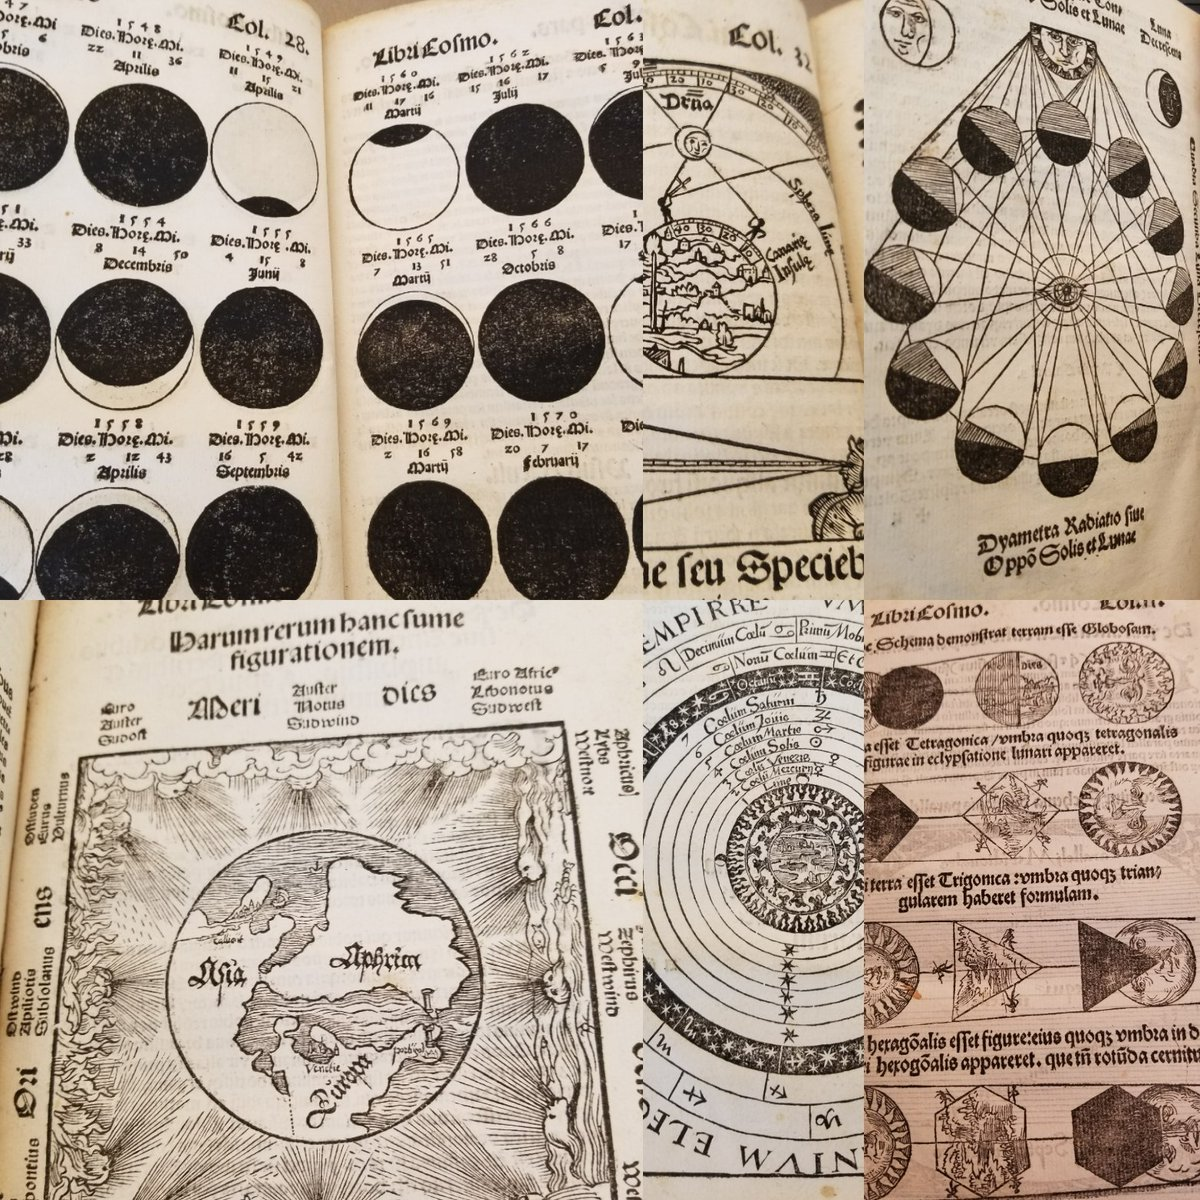 #solareclipse  so many awesome astronomy books @sutrolibrary this from 1525 #lovethislibrary #libraries #rarebooks #archives <br>http://pic.twitter.com/3Uwcwk1EJz